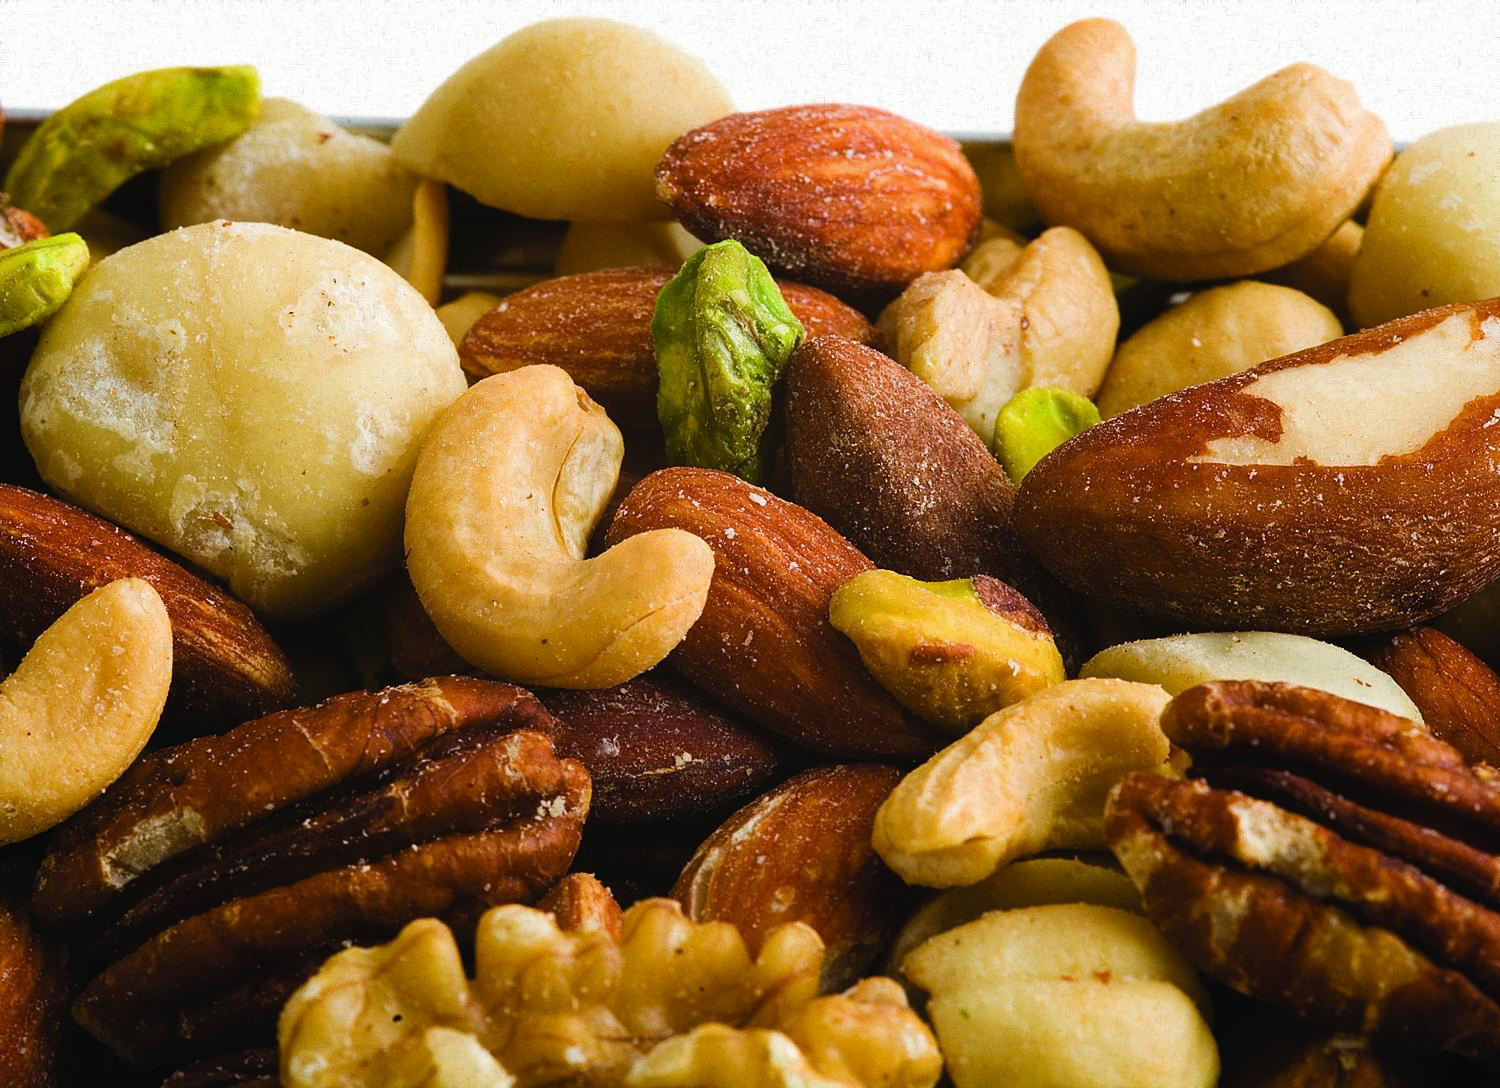 Health Benefits of Tree Nuts